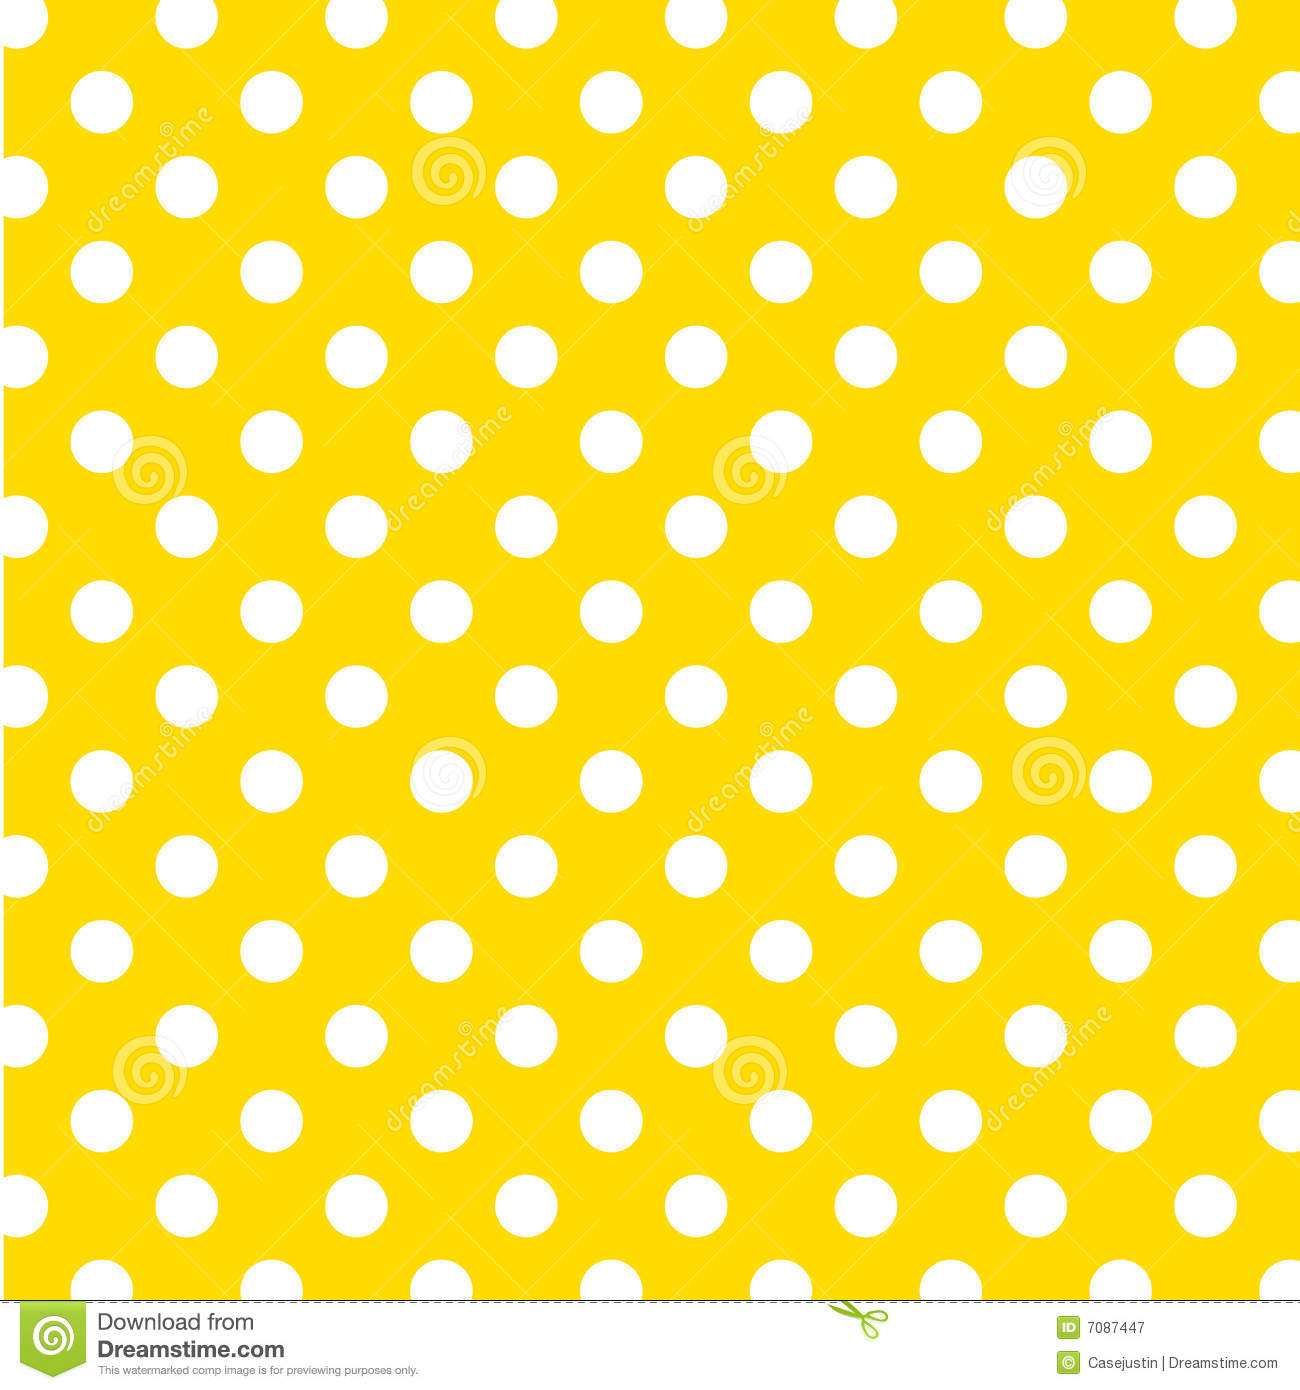 156dad389d9 Seamless pattern of large white polka dots on a bright yellow background  for arts, crafts, fabrics, decorating, albums and scrap books.